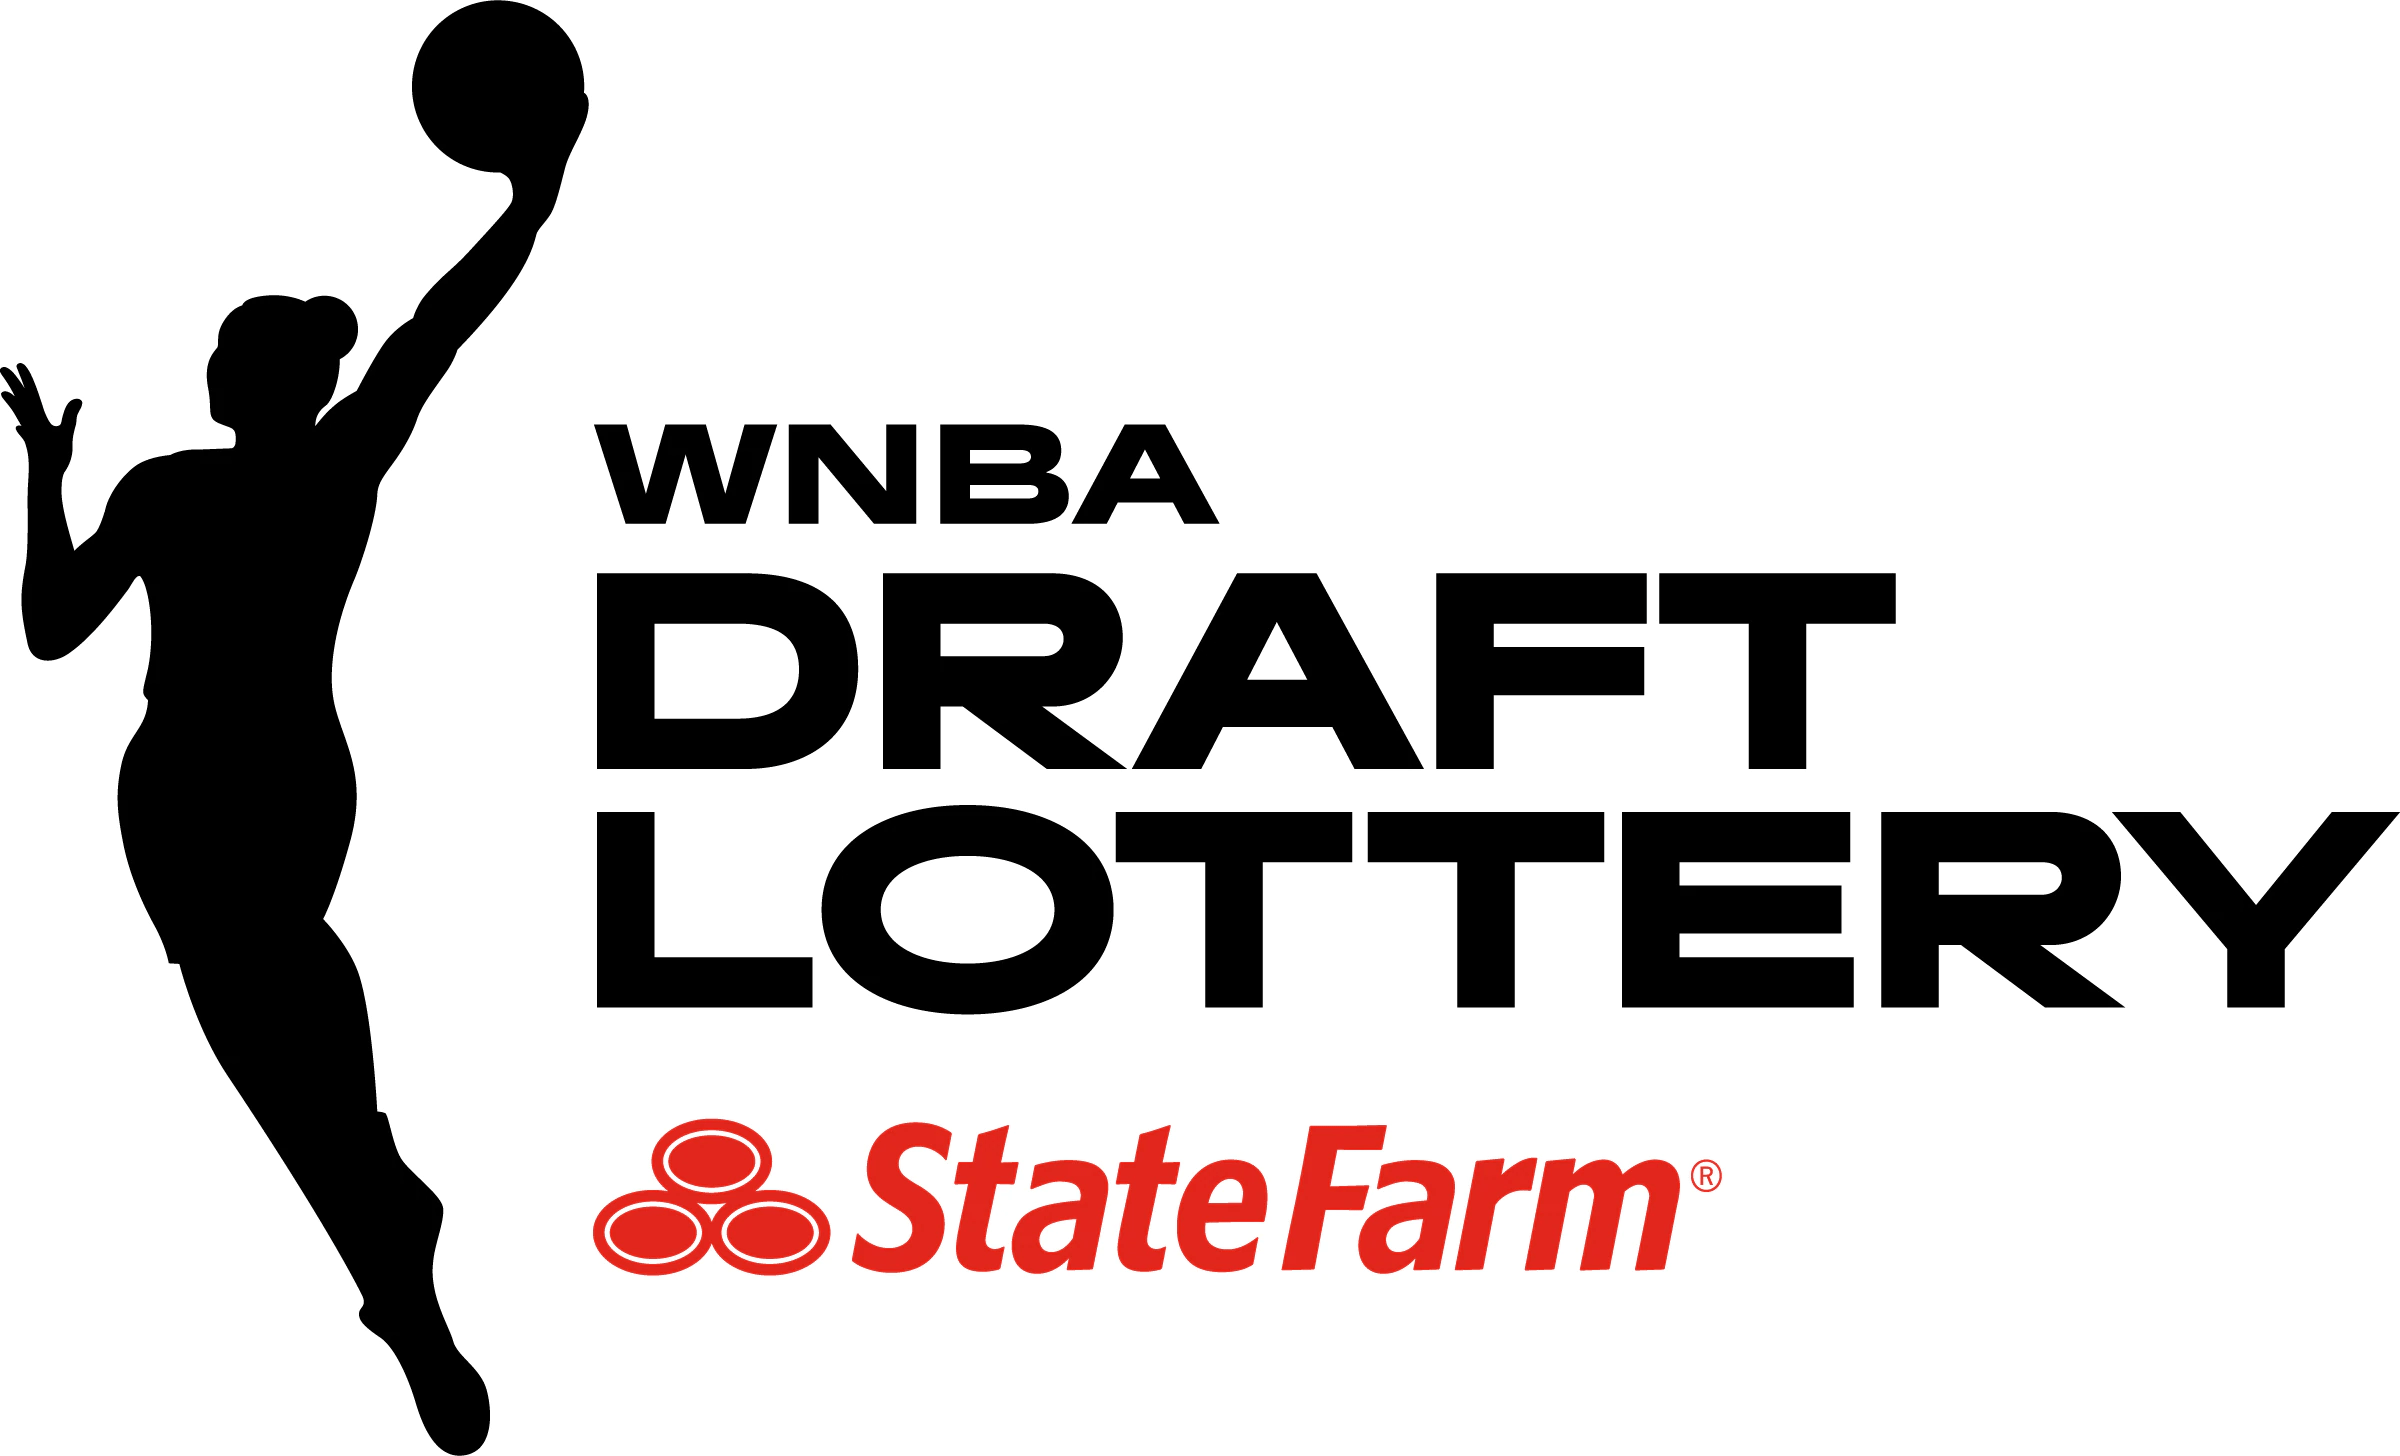 New York Liberty wins first pick of the 2020 WNBA Draft after lottery